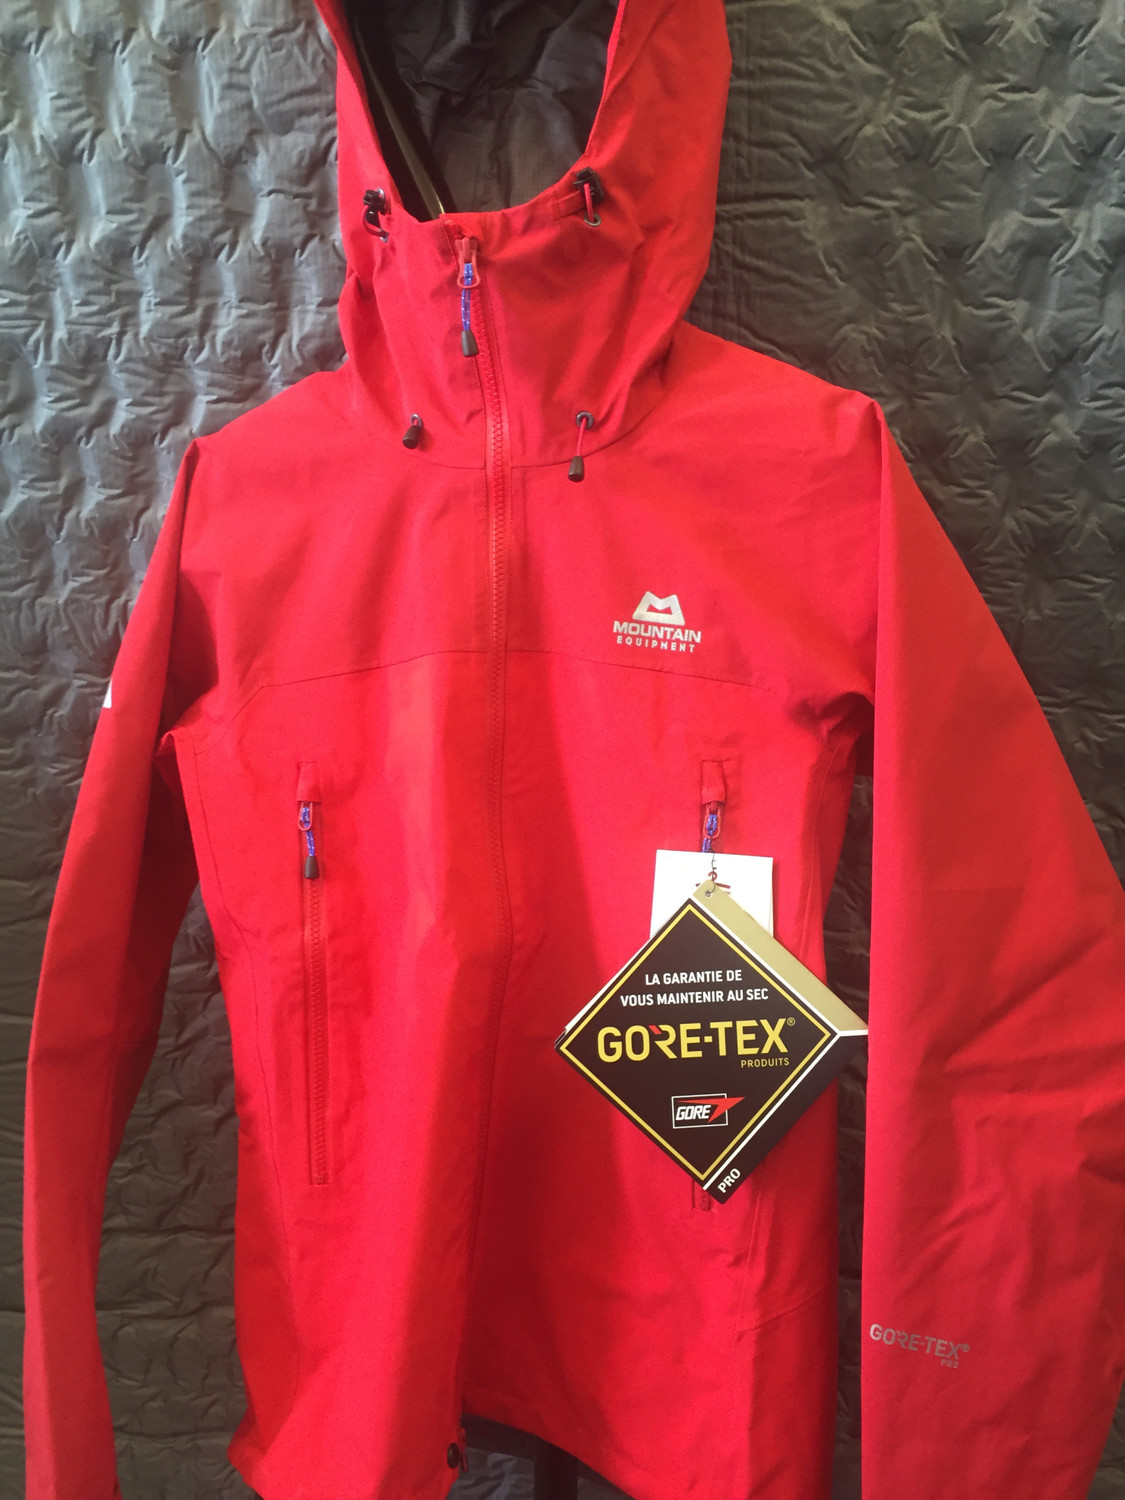 MOUNTAIN EQUIPMENT JANAK GORETEX PRO JACKET SMALL IMPERIAL RED